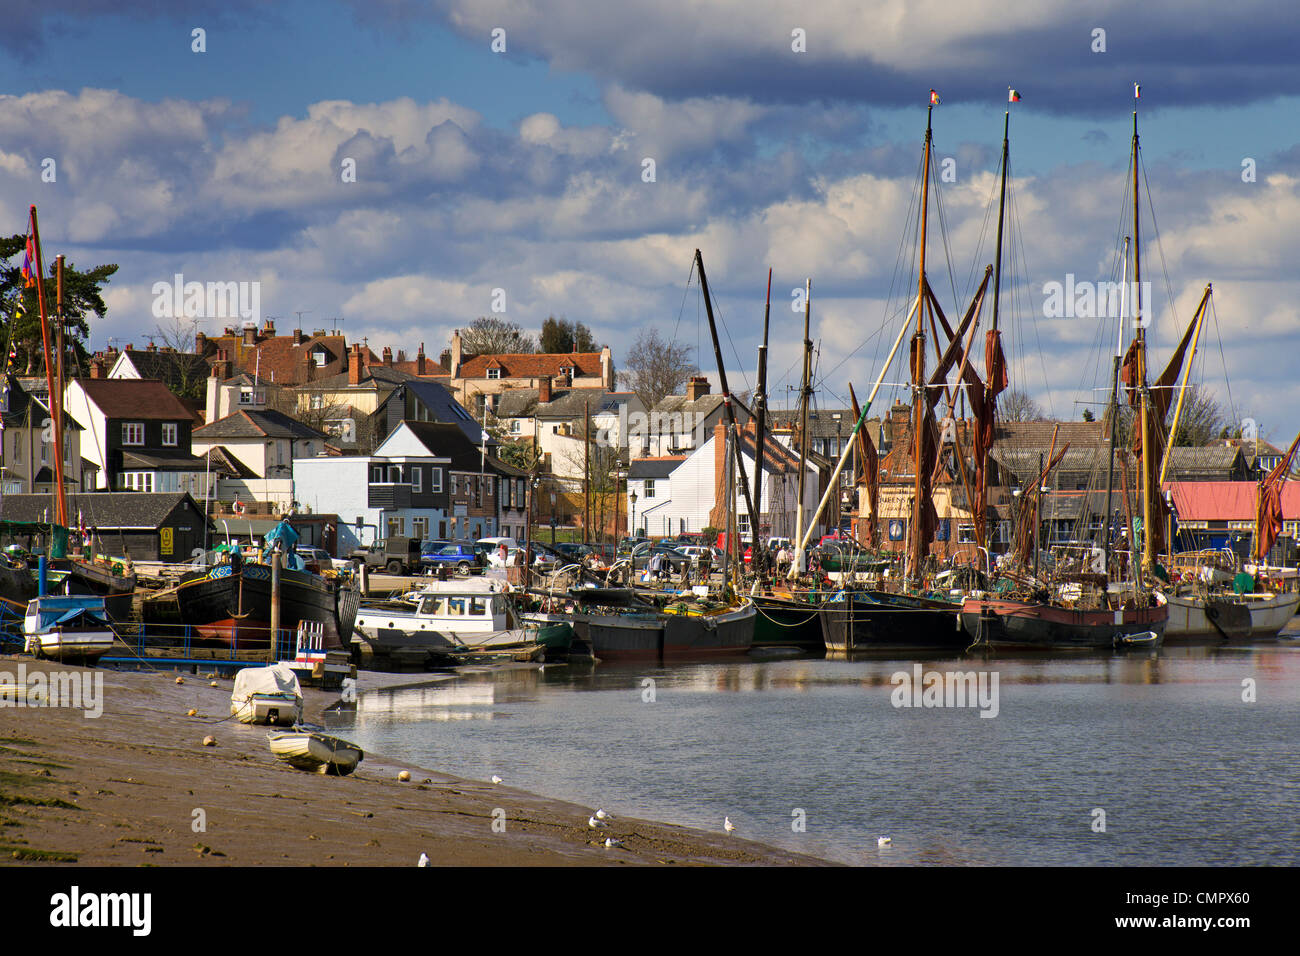 The Essex town of Maldon on the Blackwater Estuary, with the town and barges visible. - Stock Image